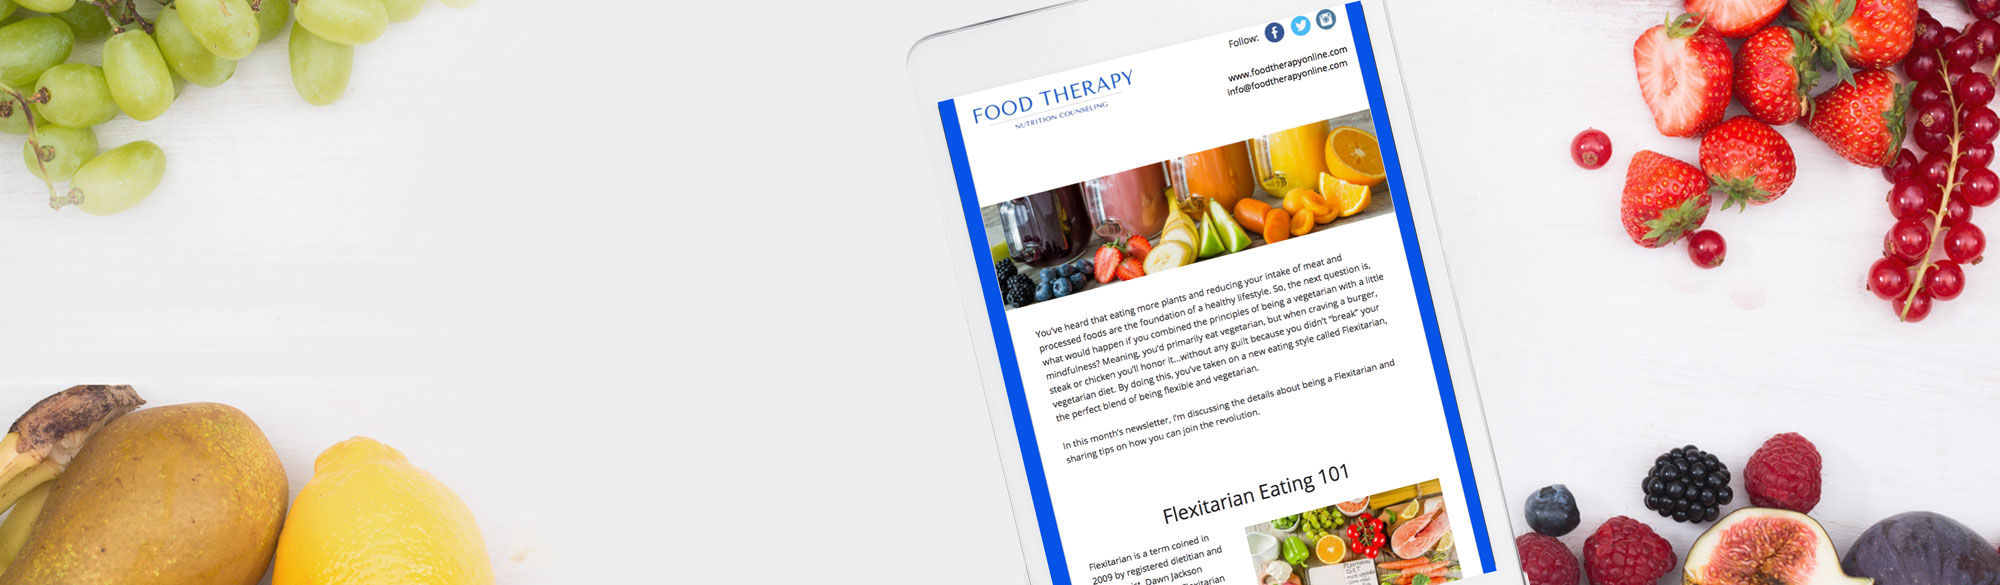 Customized Nutrition Newsletters Health Wellness Fitness